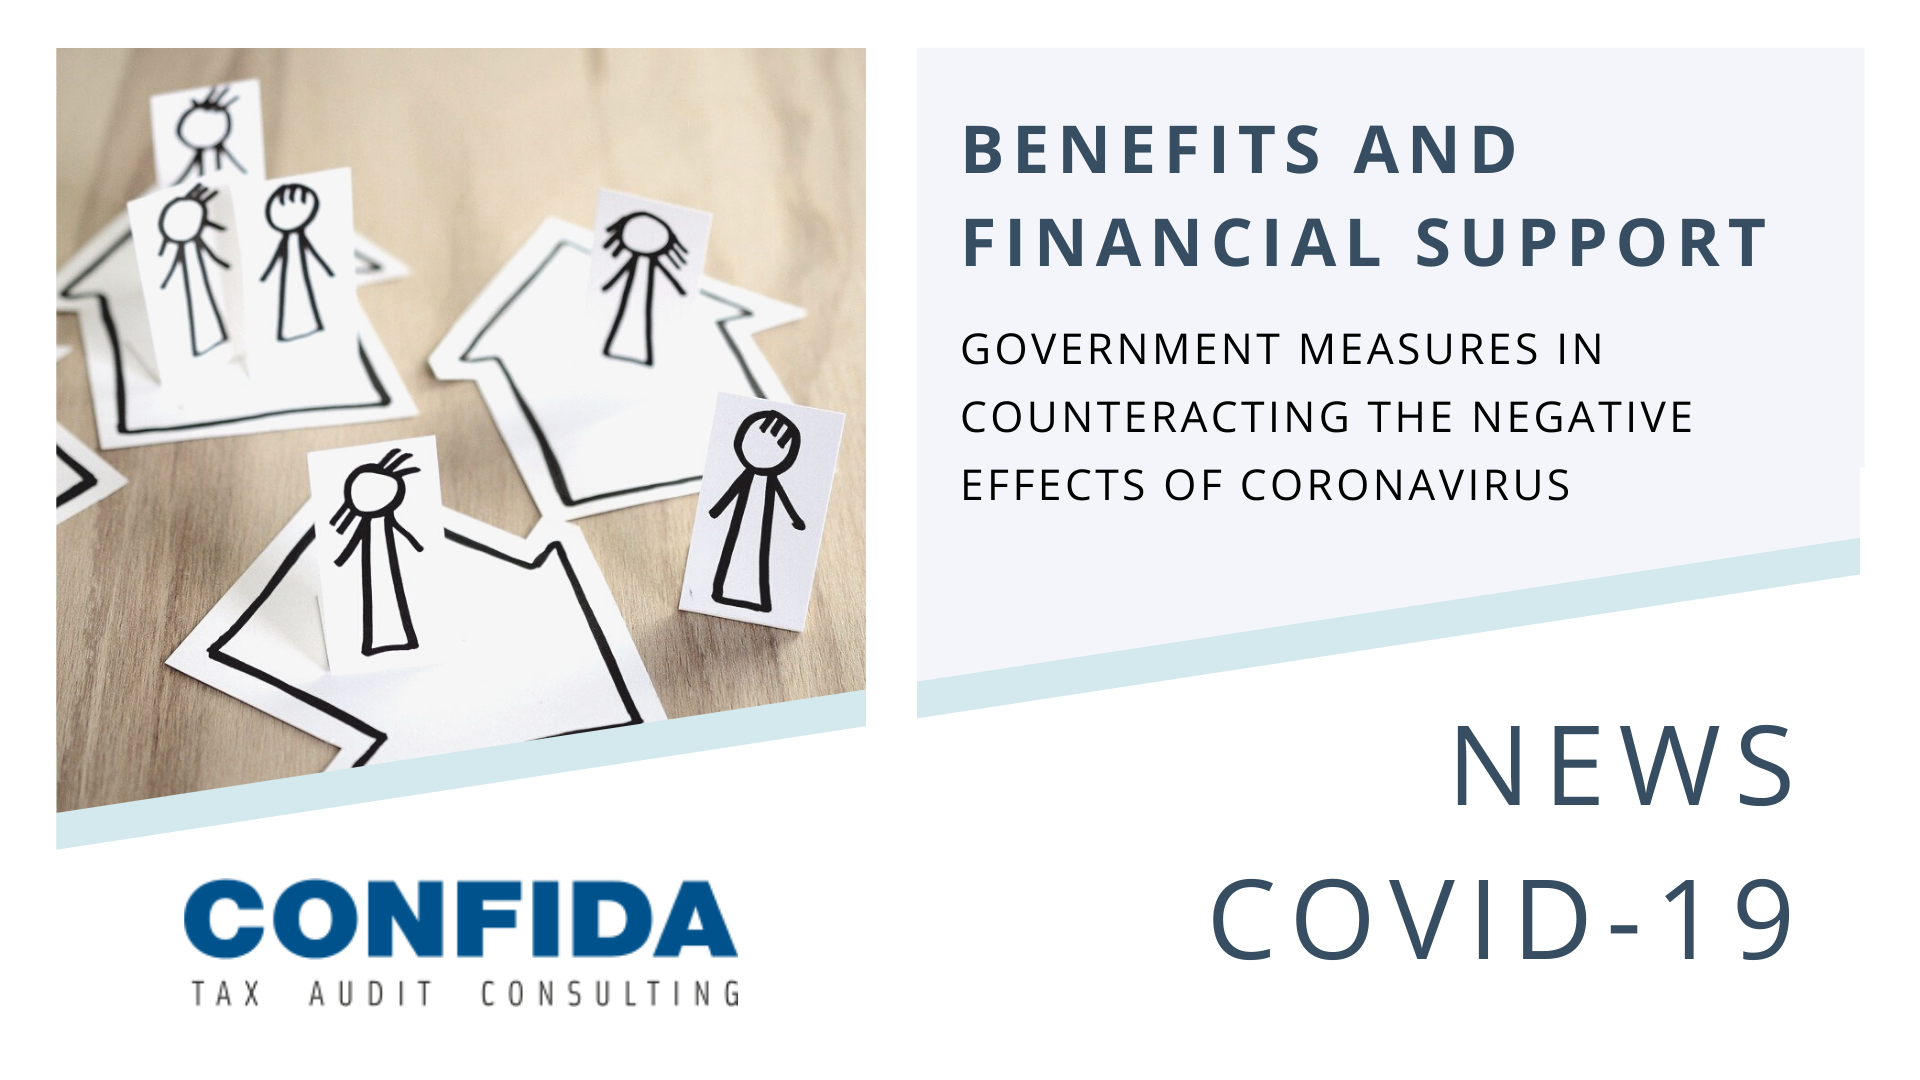 COVID-19: Benefits and Financial Support